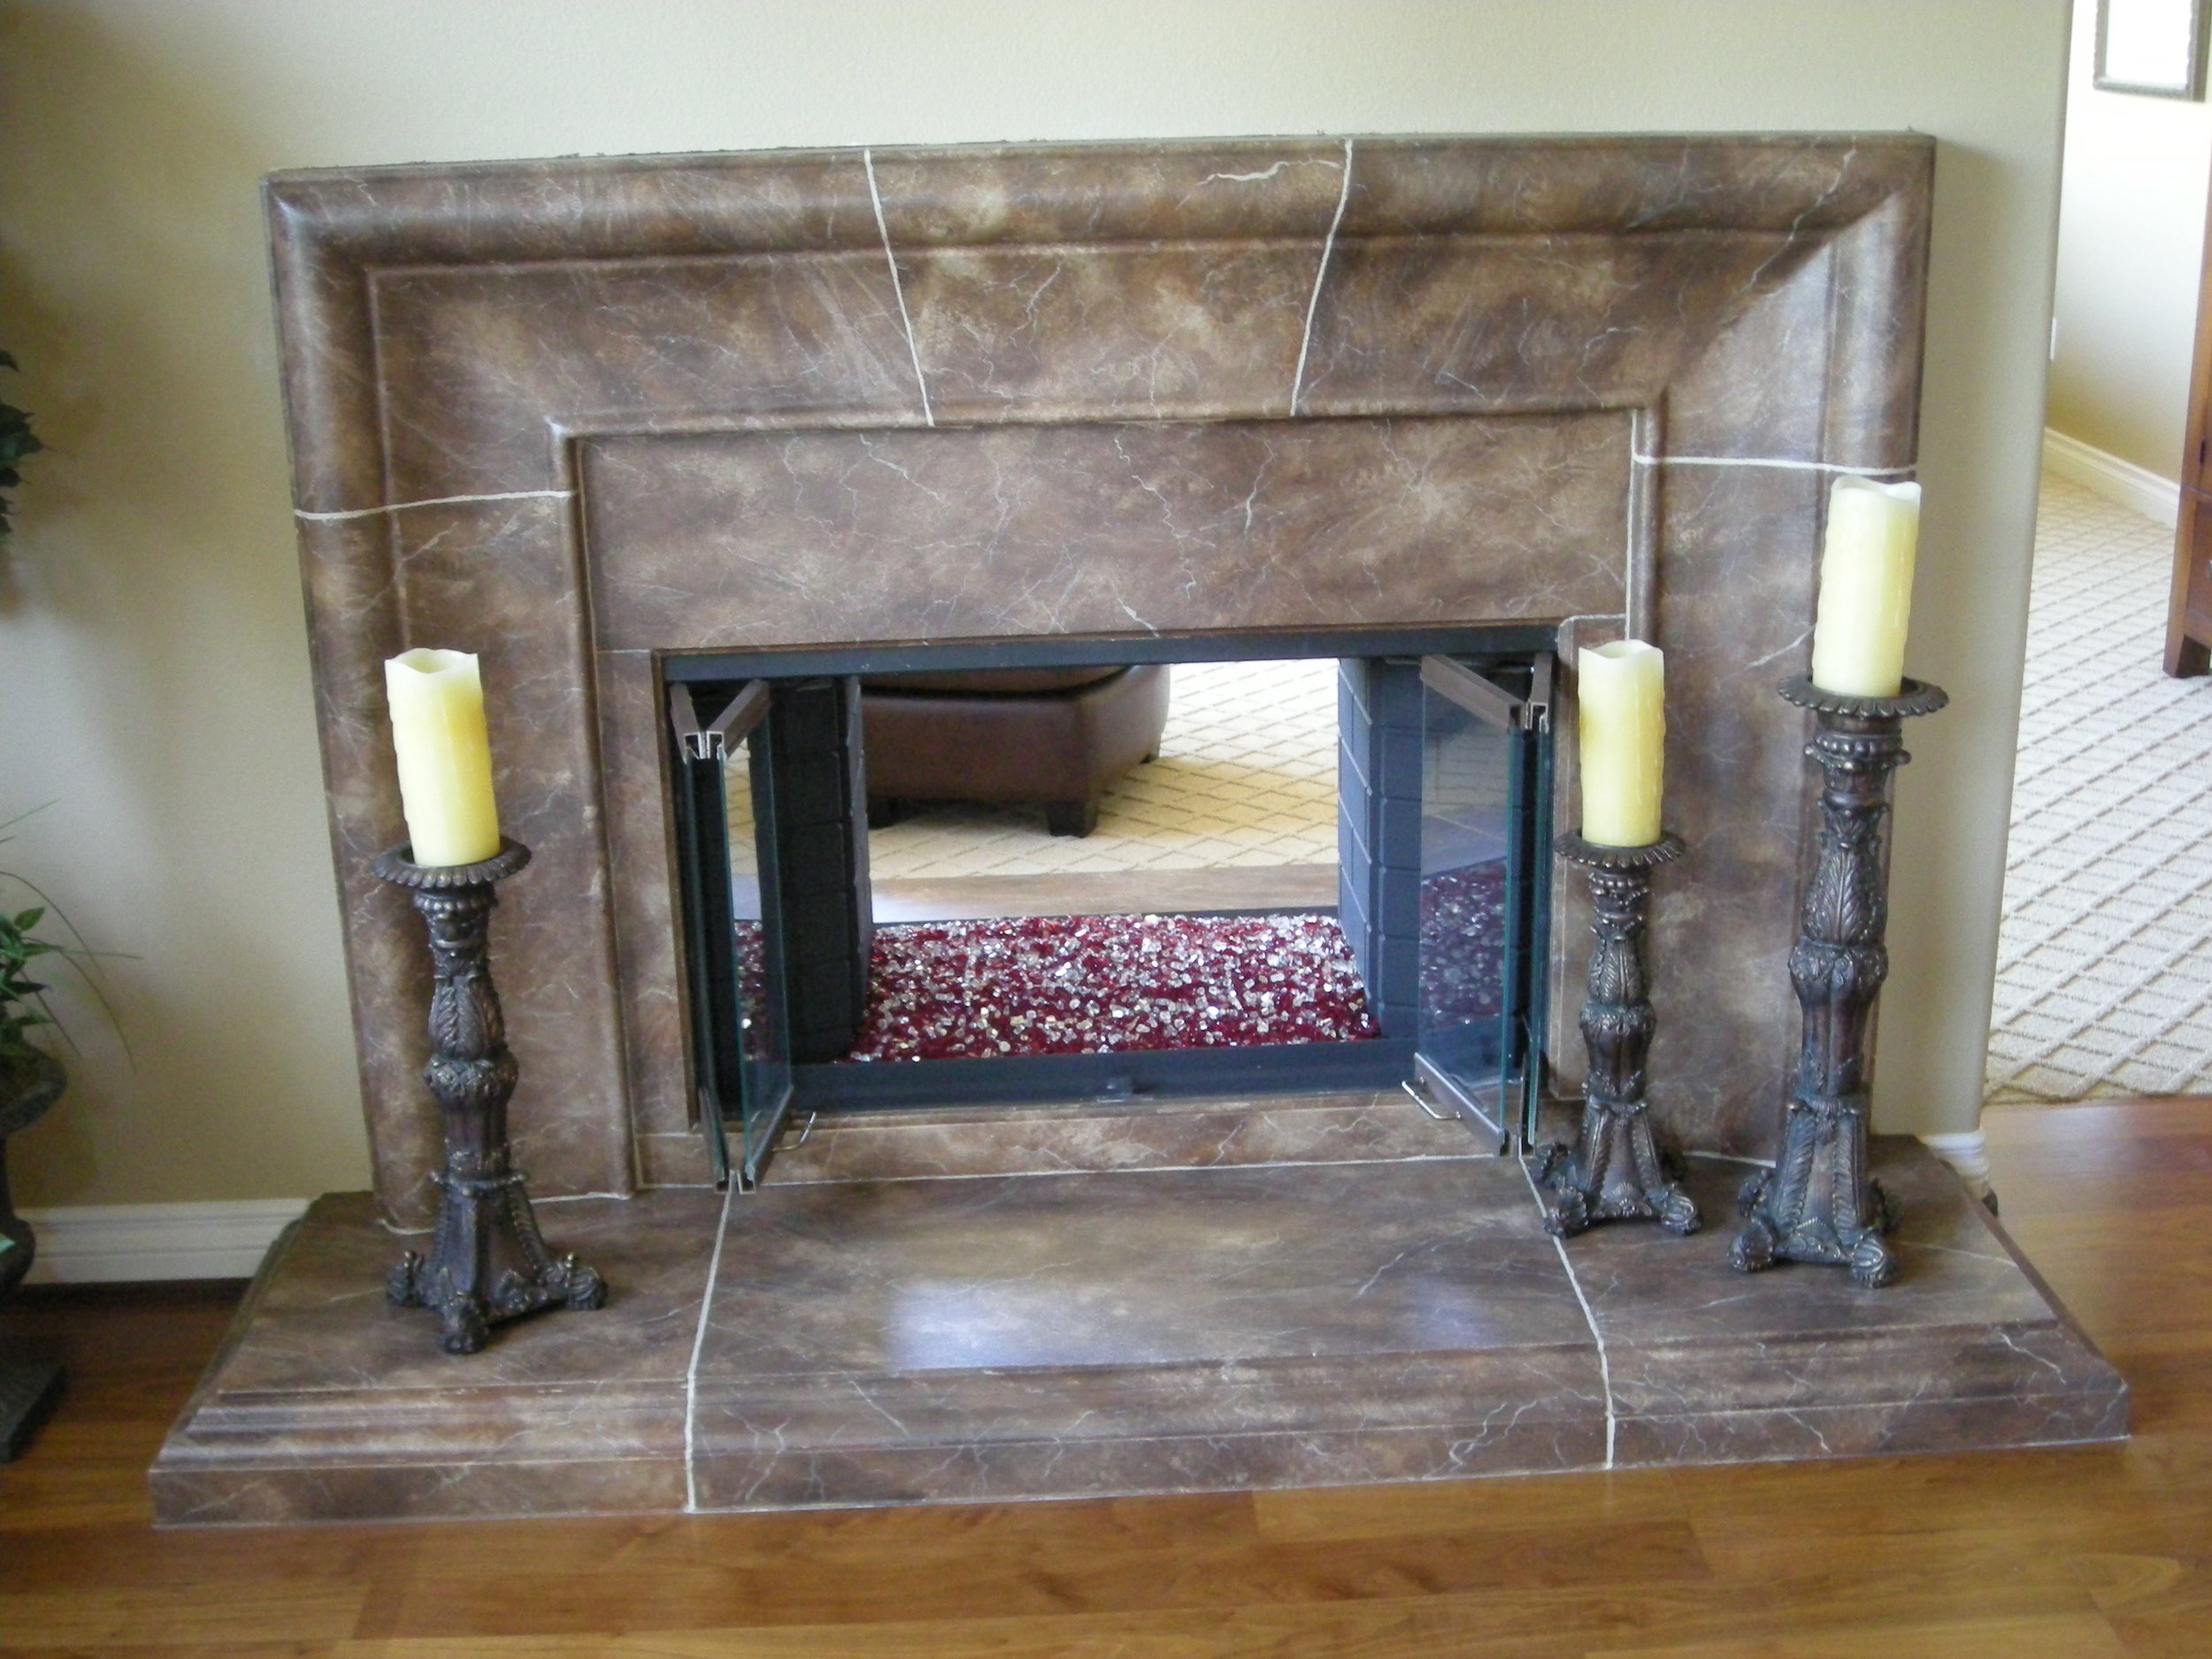 Diprima_fireplaces_007.jpg